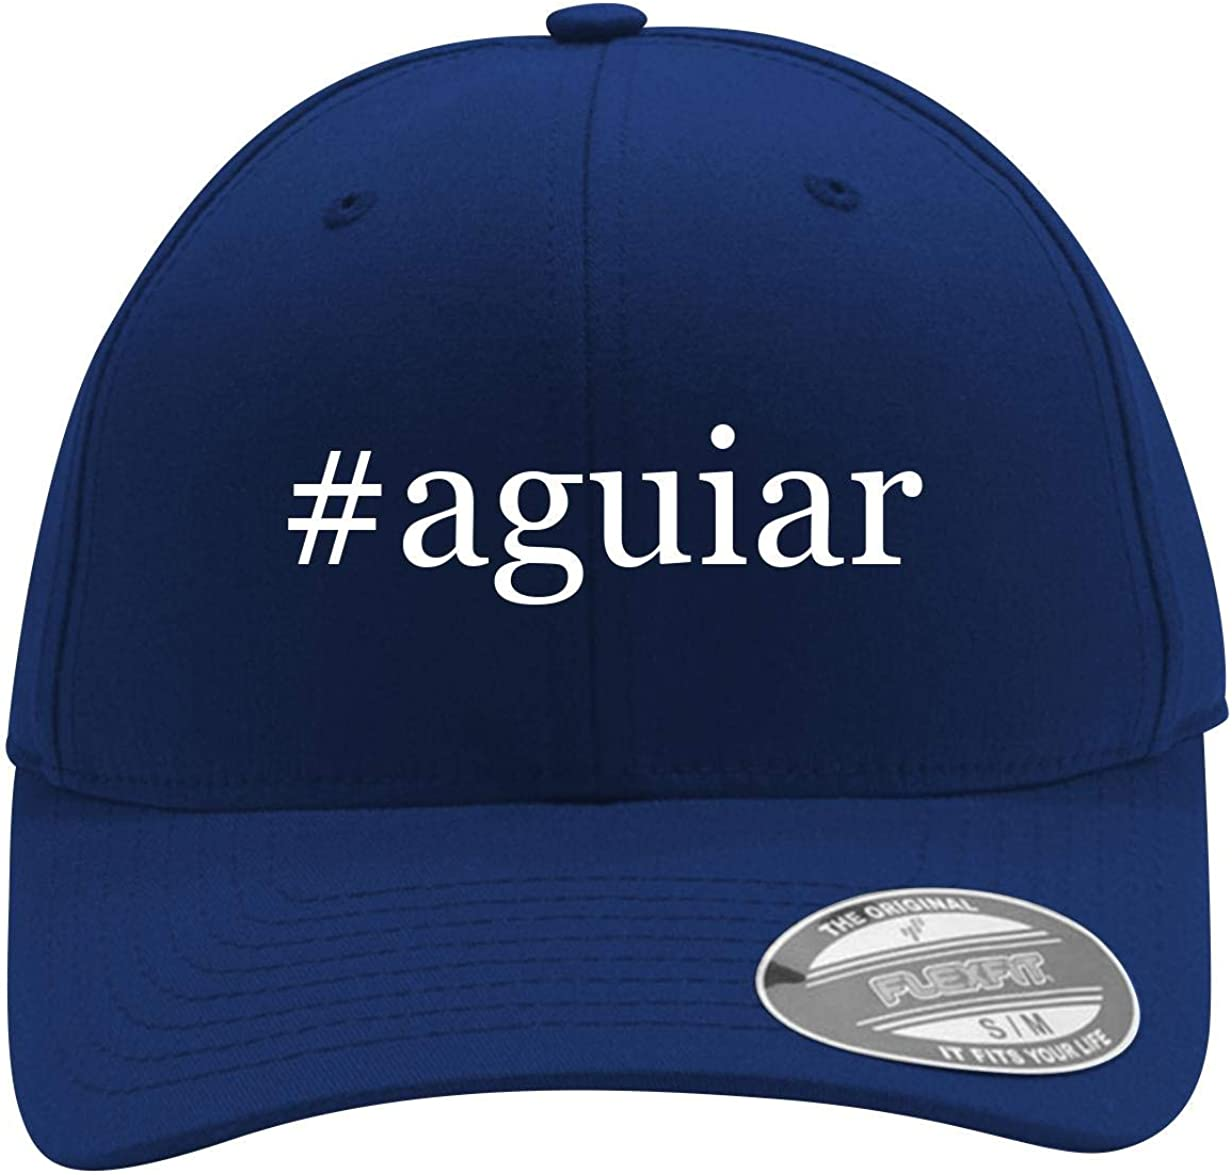 #Aguiar - Men'S Hashtag Flexfit Baseball Cap Hat